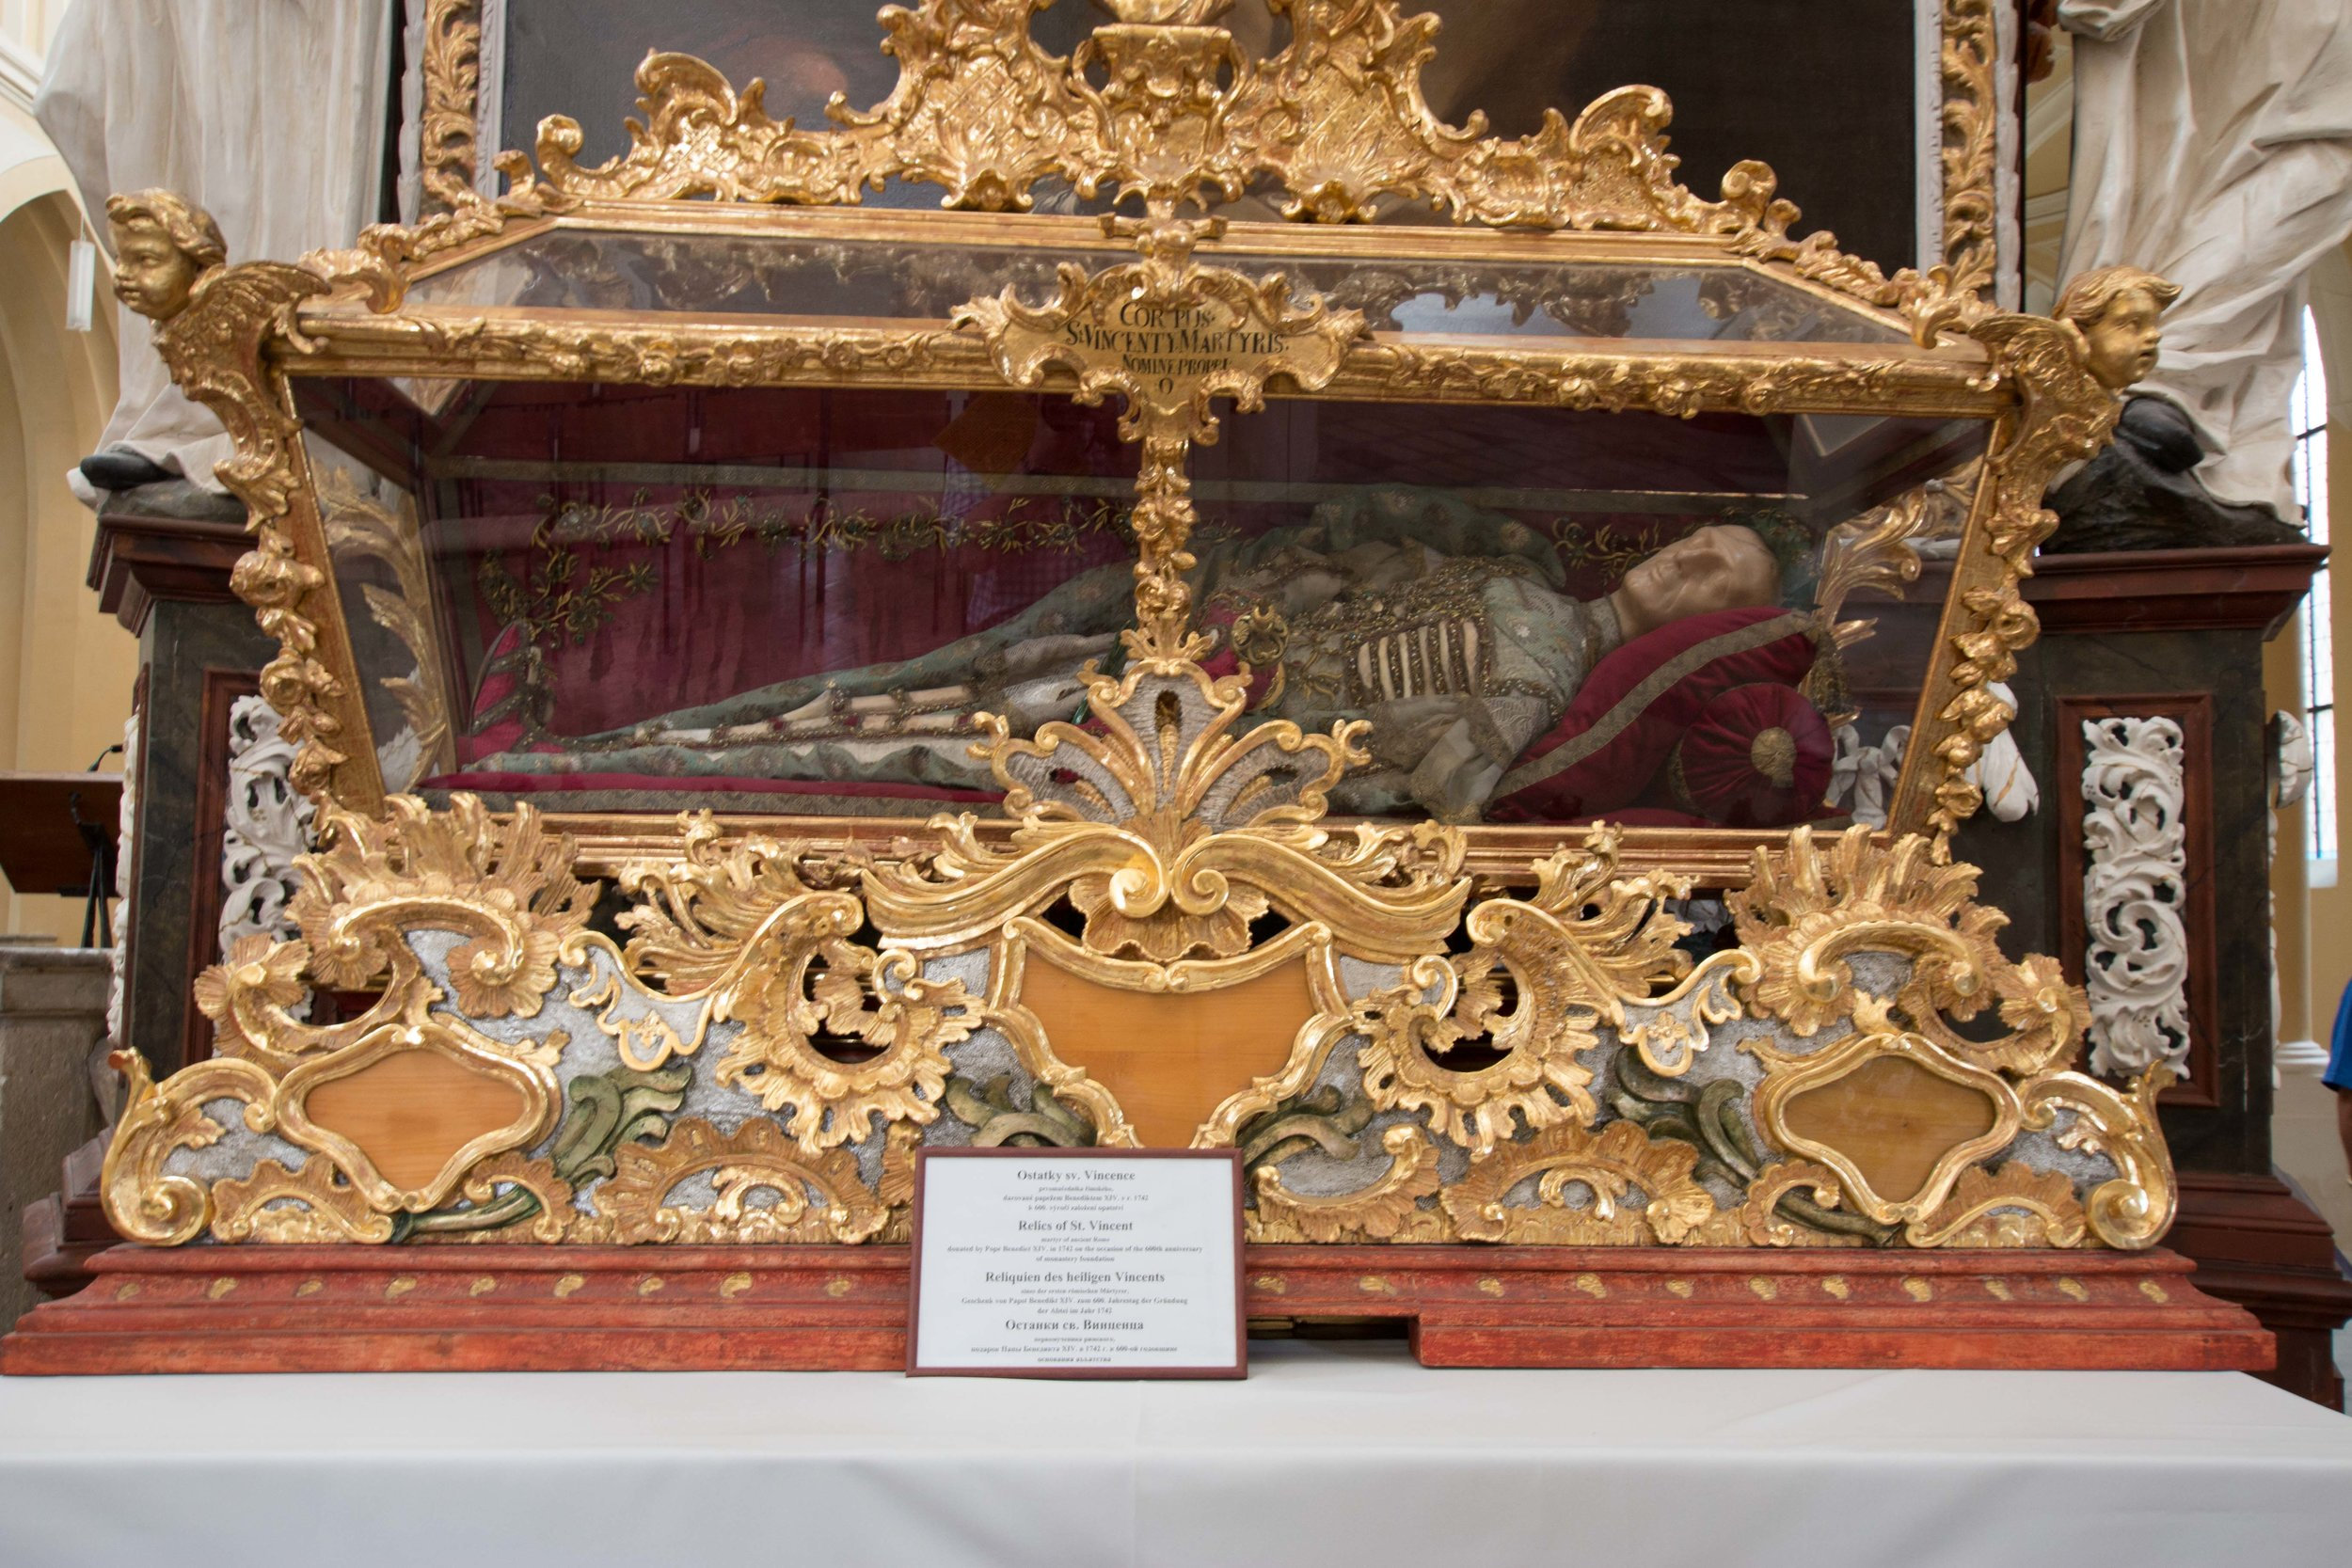 The relics of St. Vincent